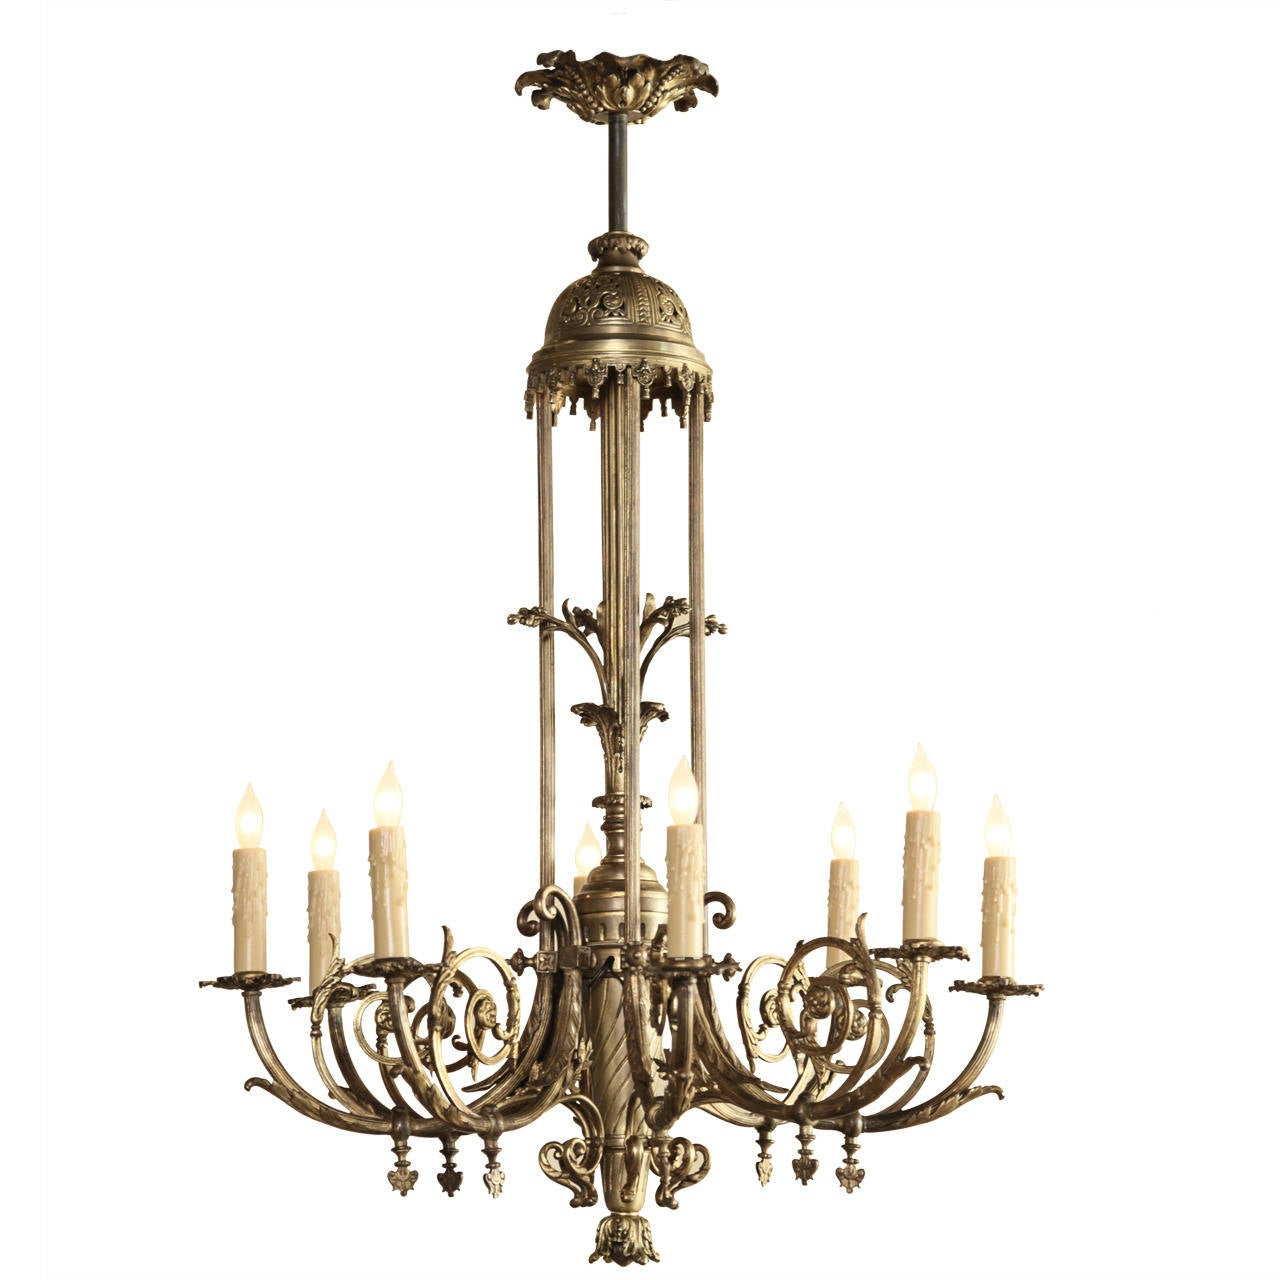 Antique French Bronze Gasolier Chandelier at 1stdibs